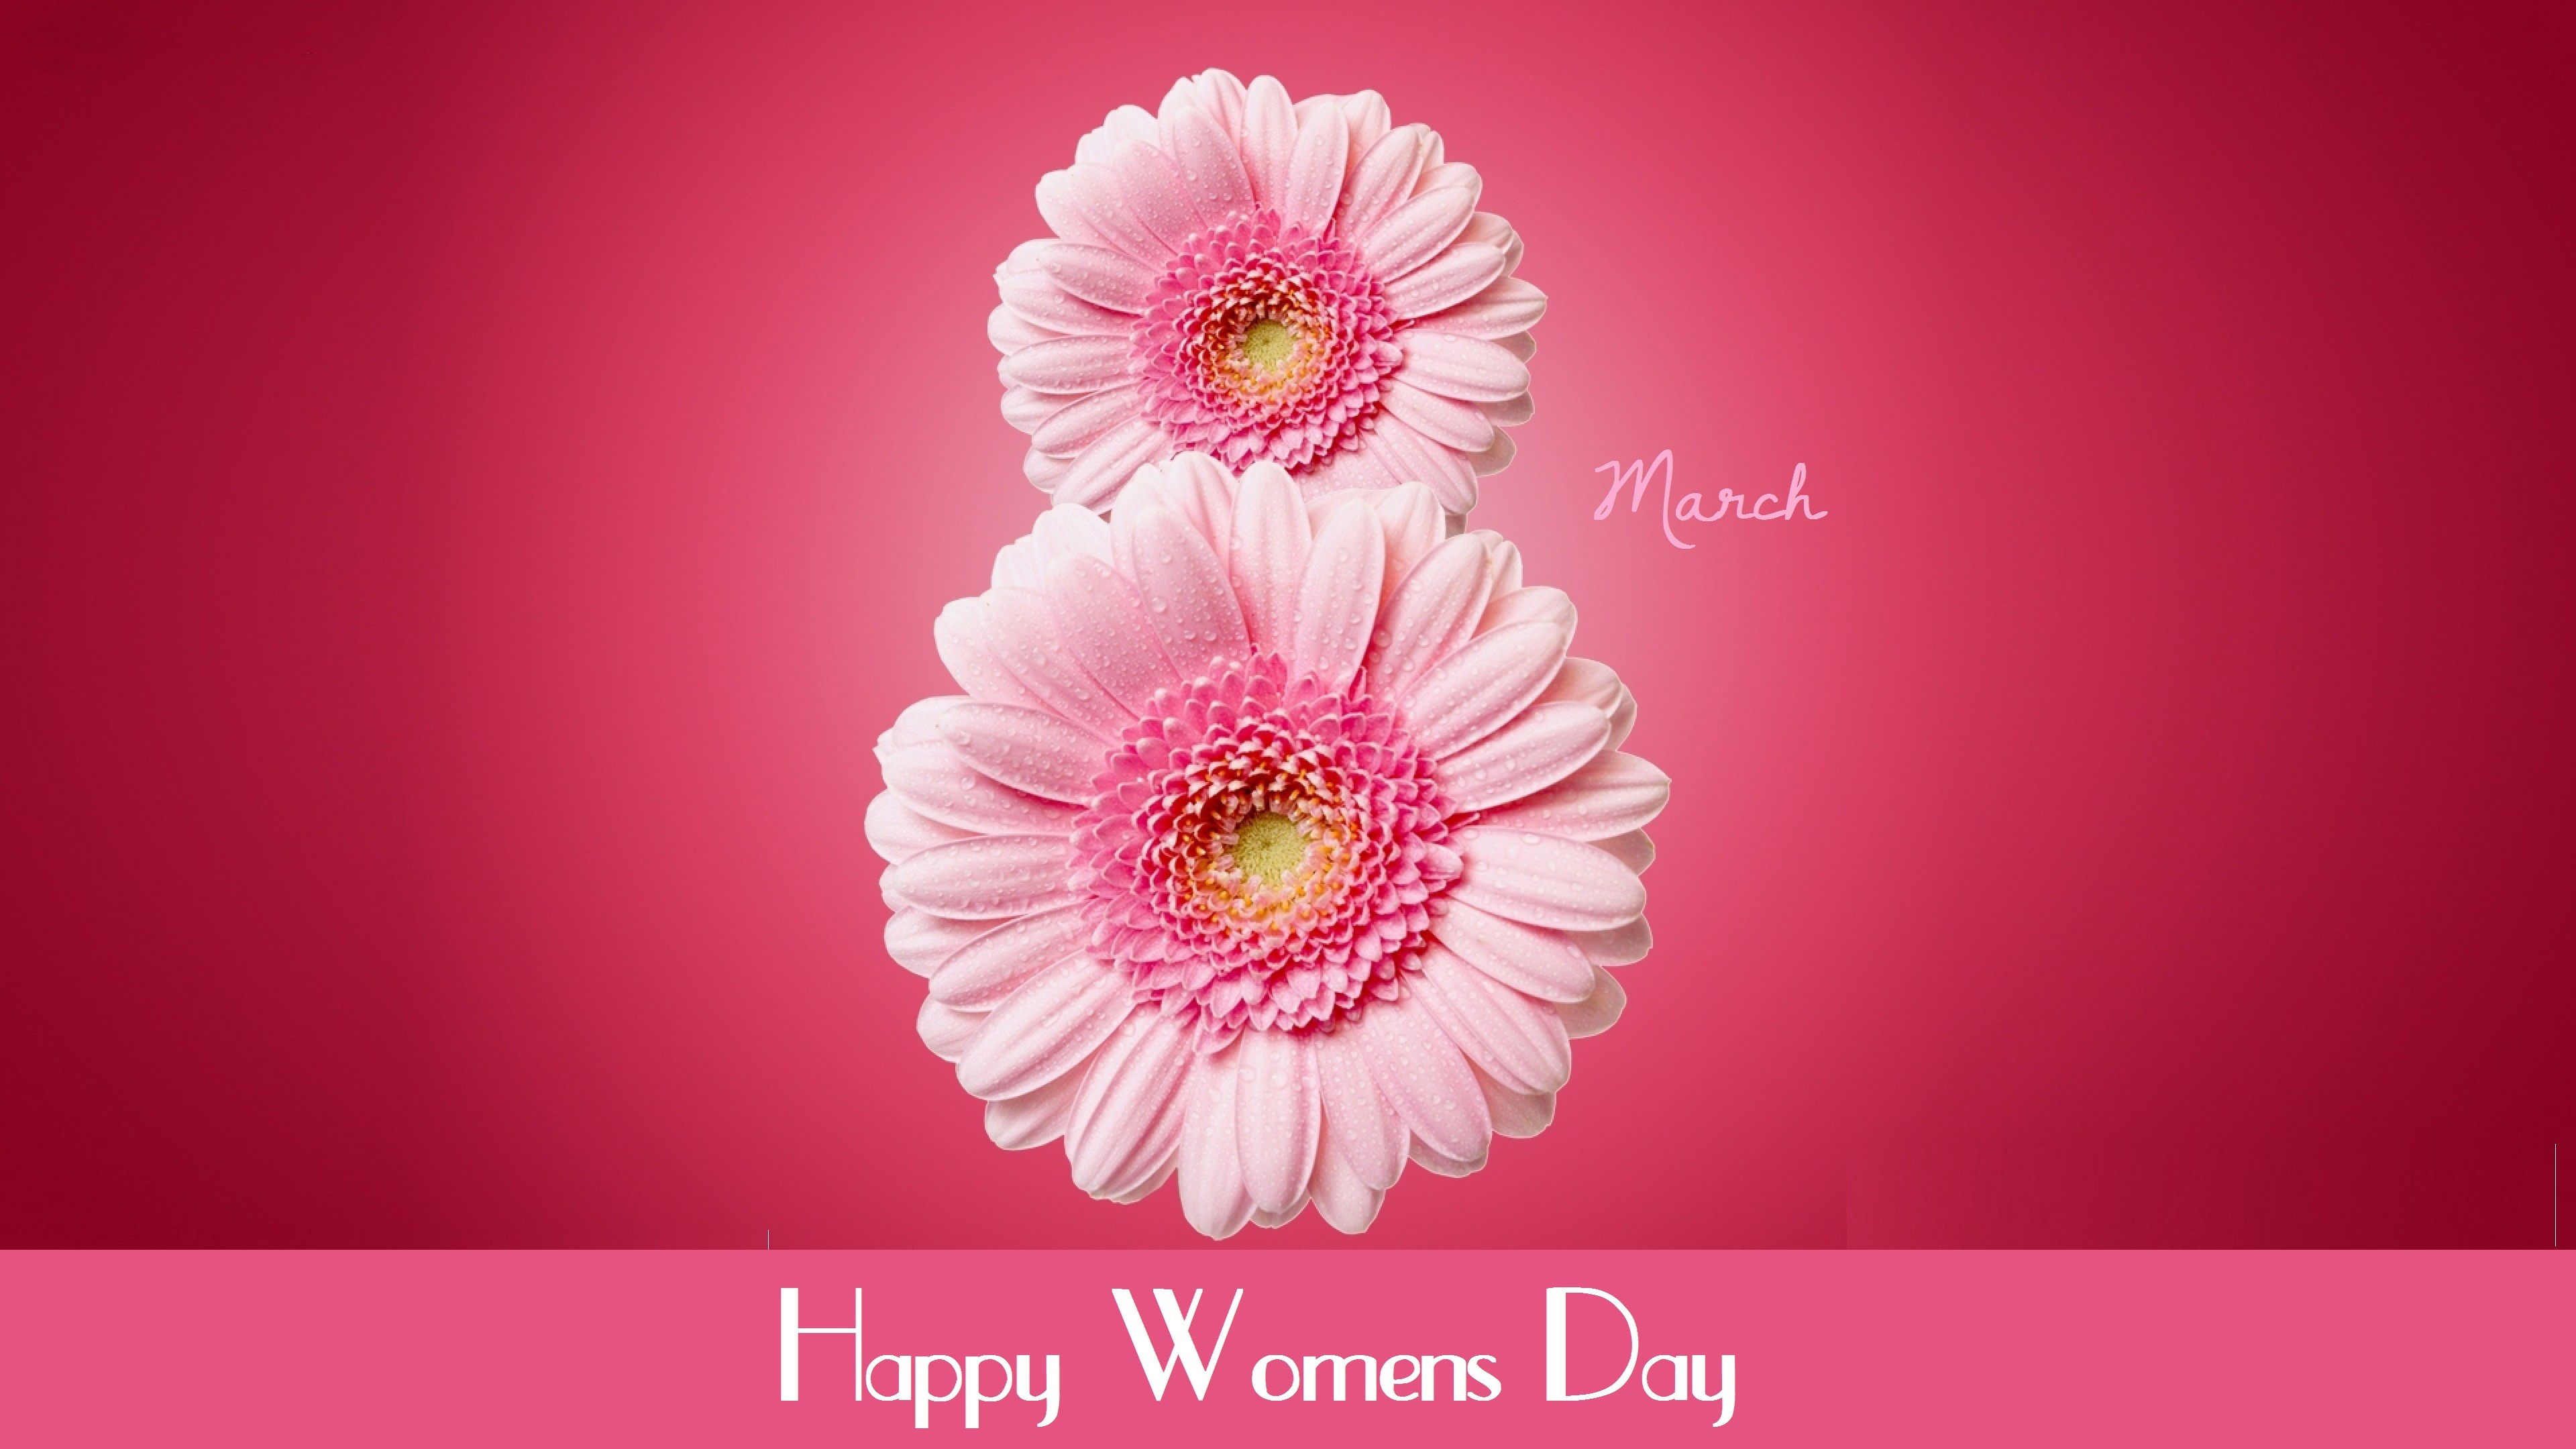 Your Resolution: 1024x1024. Resolutions: PC Mac Android iOS Custom. Tags: International Women's Day, March 8, flowers ...